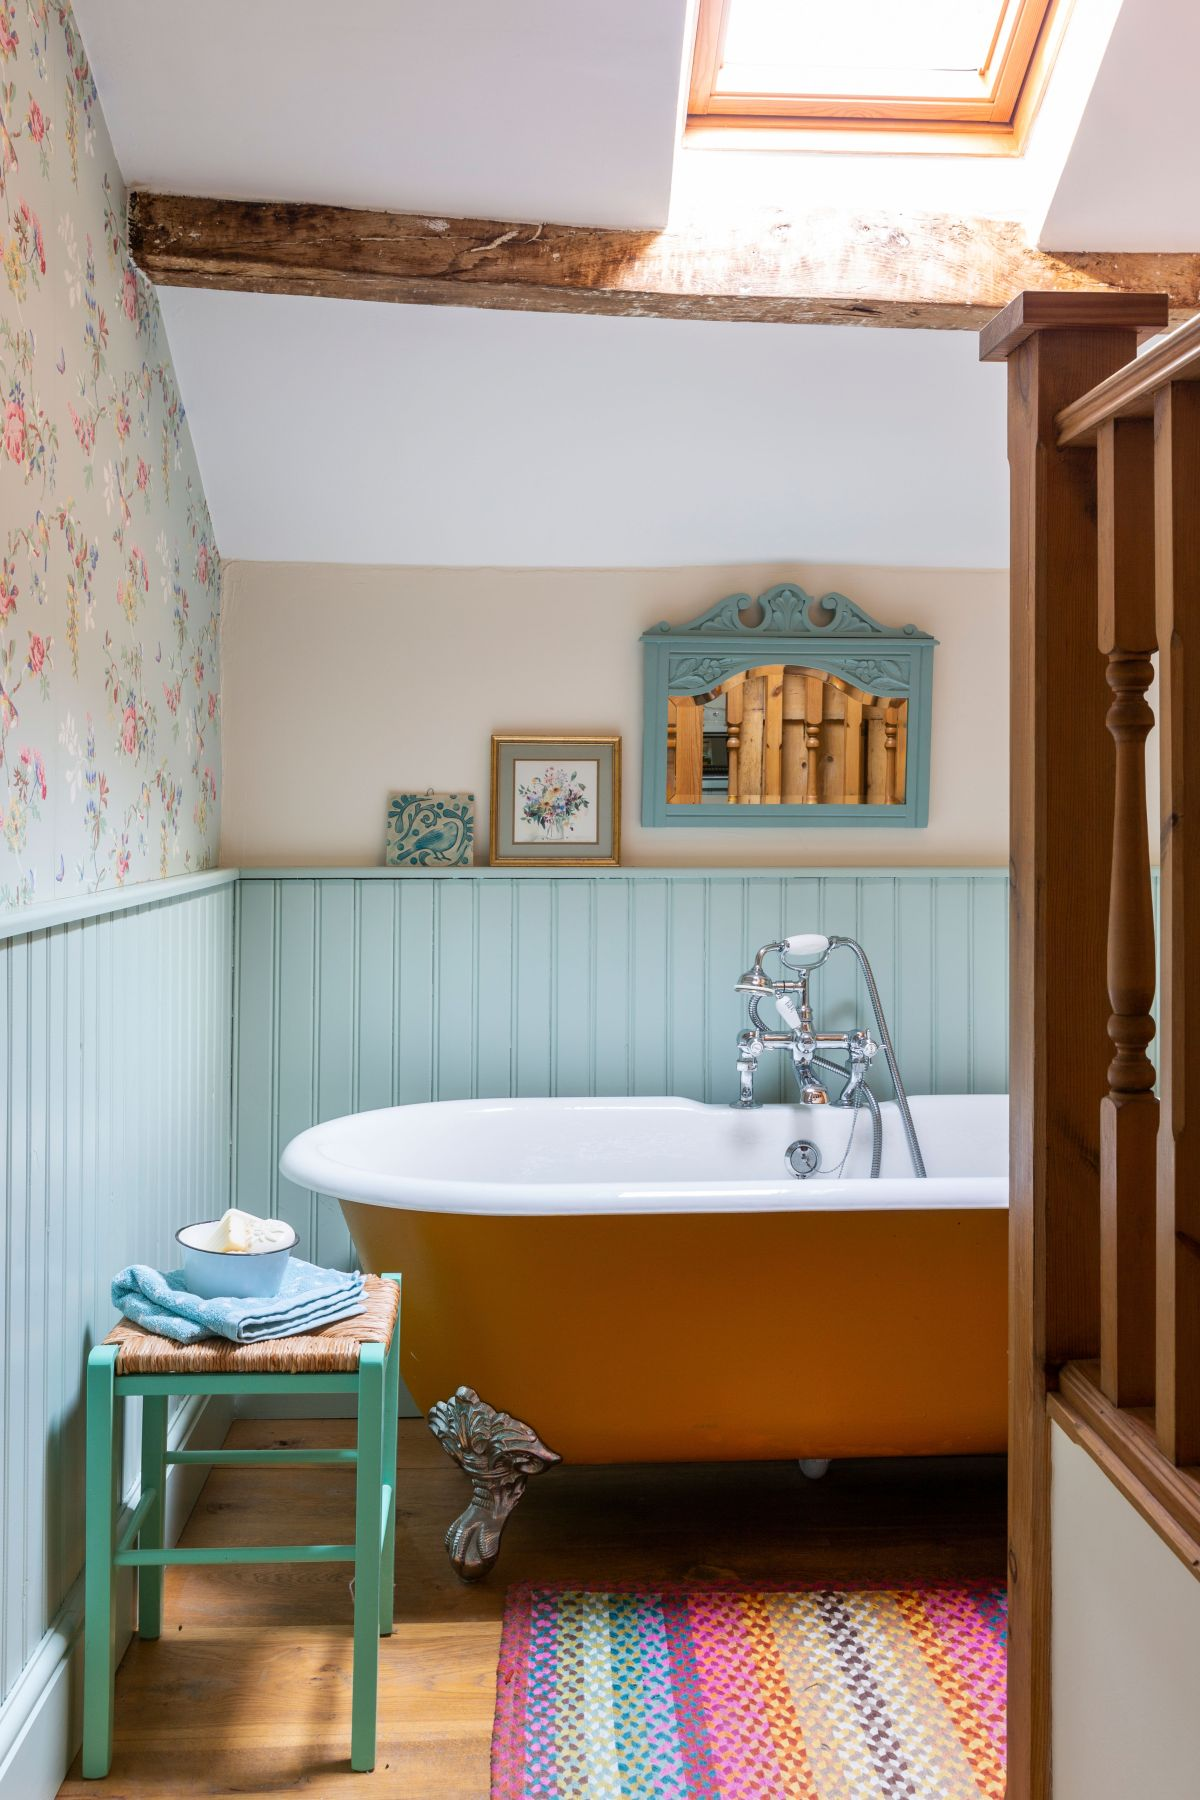 Bathroom Paint Ideas 19 Colour Schemes To Brighten Up Your Bathroom Space Real Homes,How To Organise Your Home Library